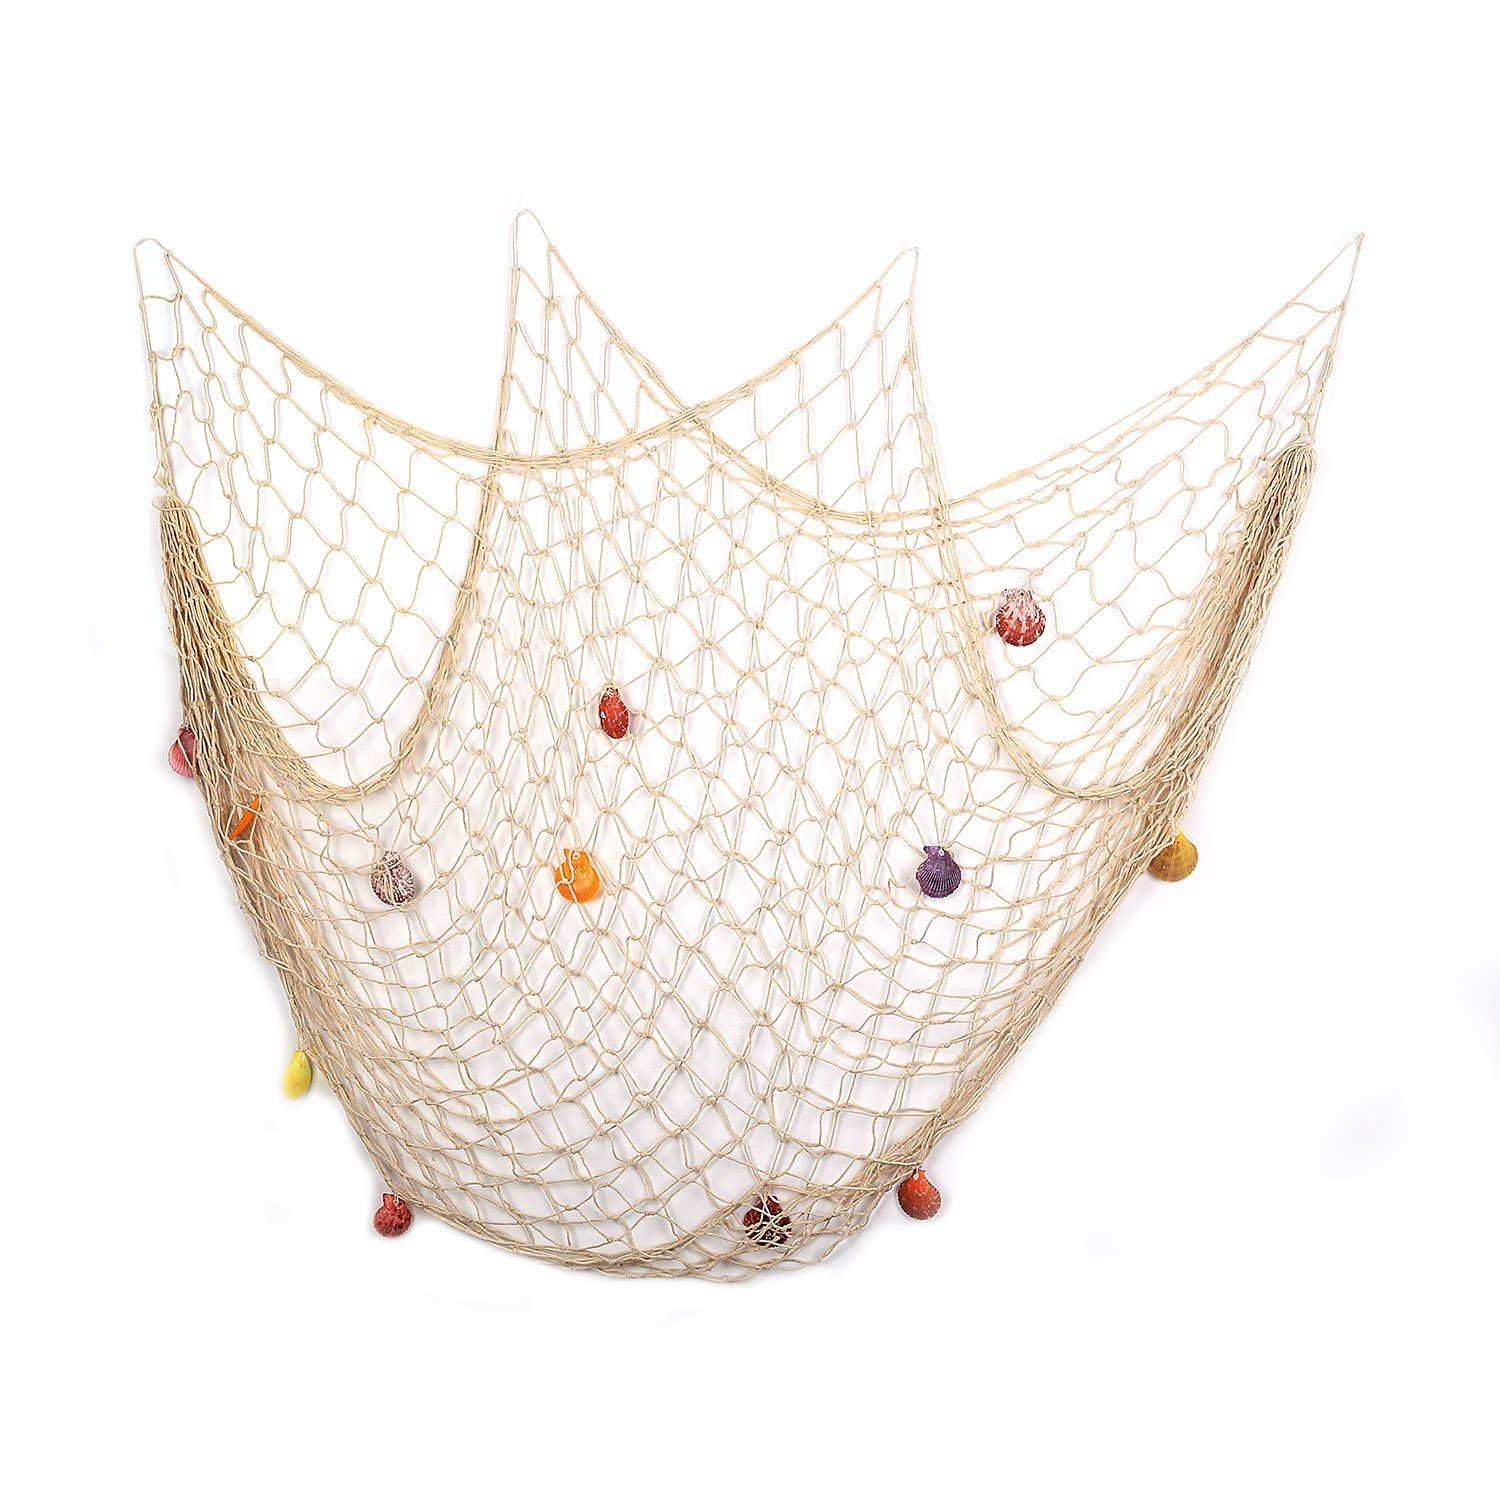 Yagote Decorative Fish Net, Mediterranean Style Nautical Decorative Fishing Net with Shells and Anchor Home Decor Room Decoration (2mx1.5m, White with Anchor)